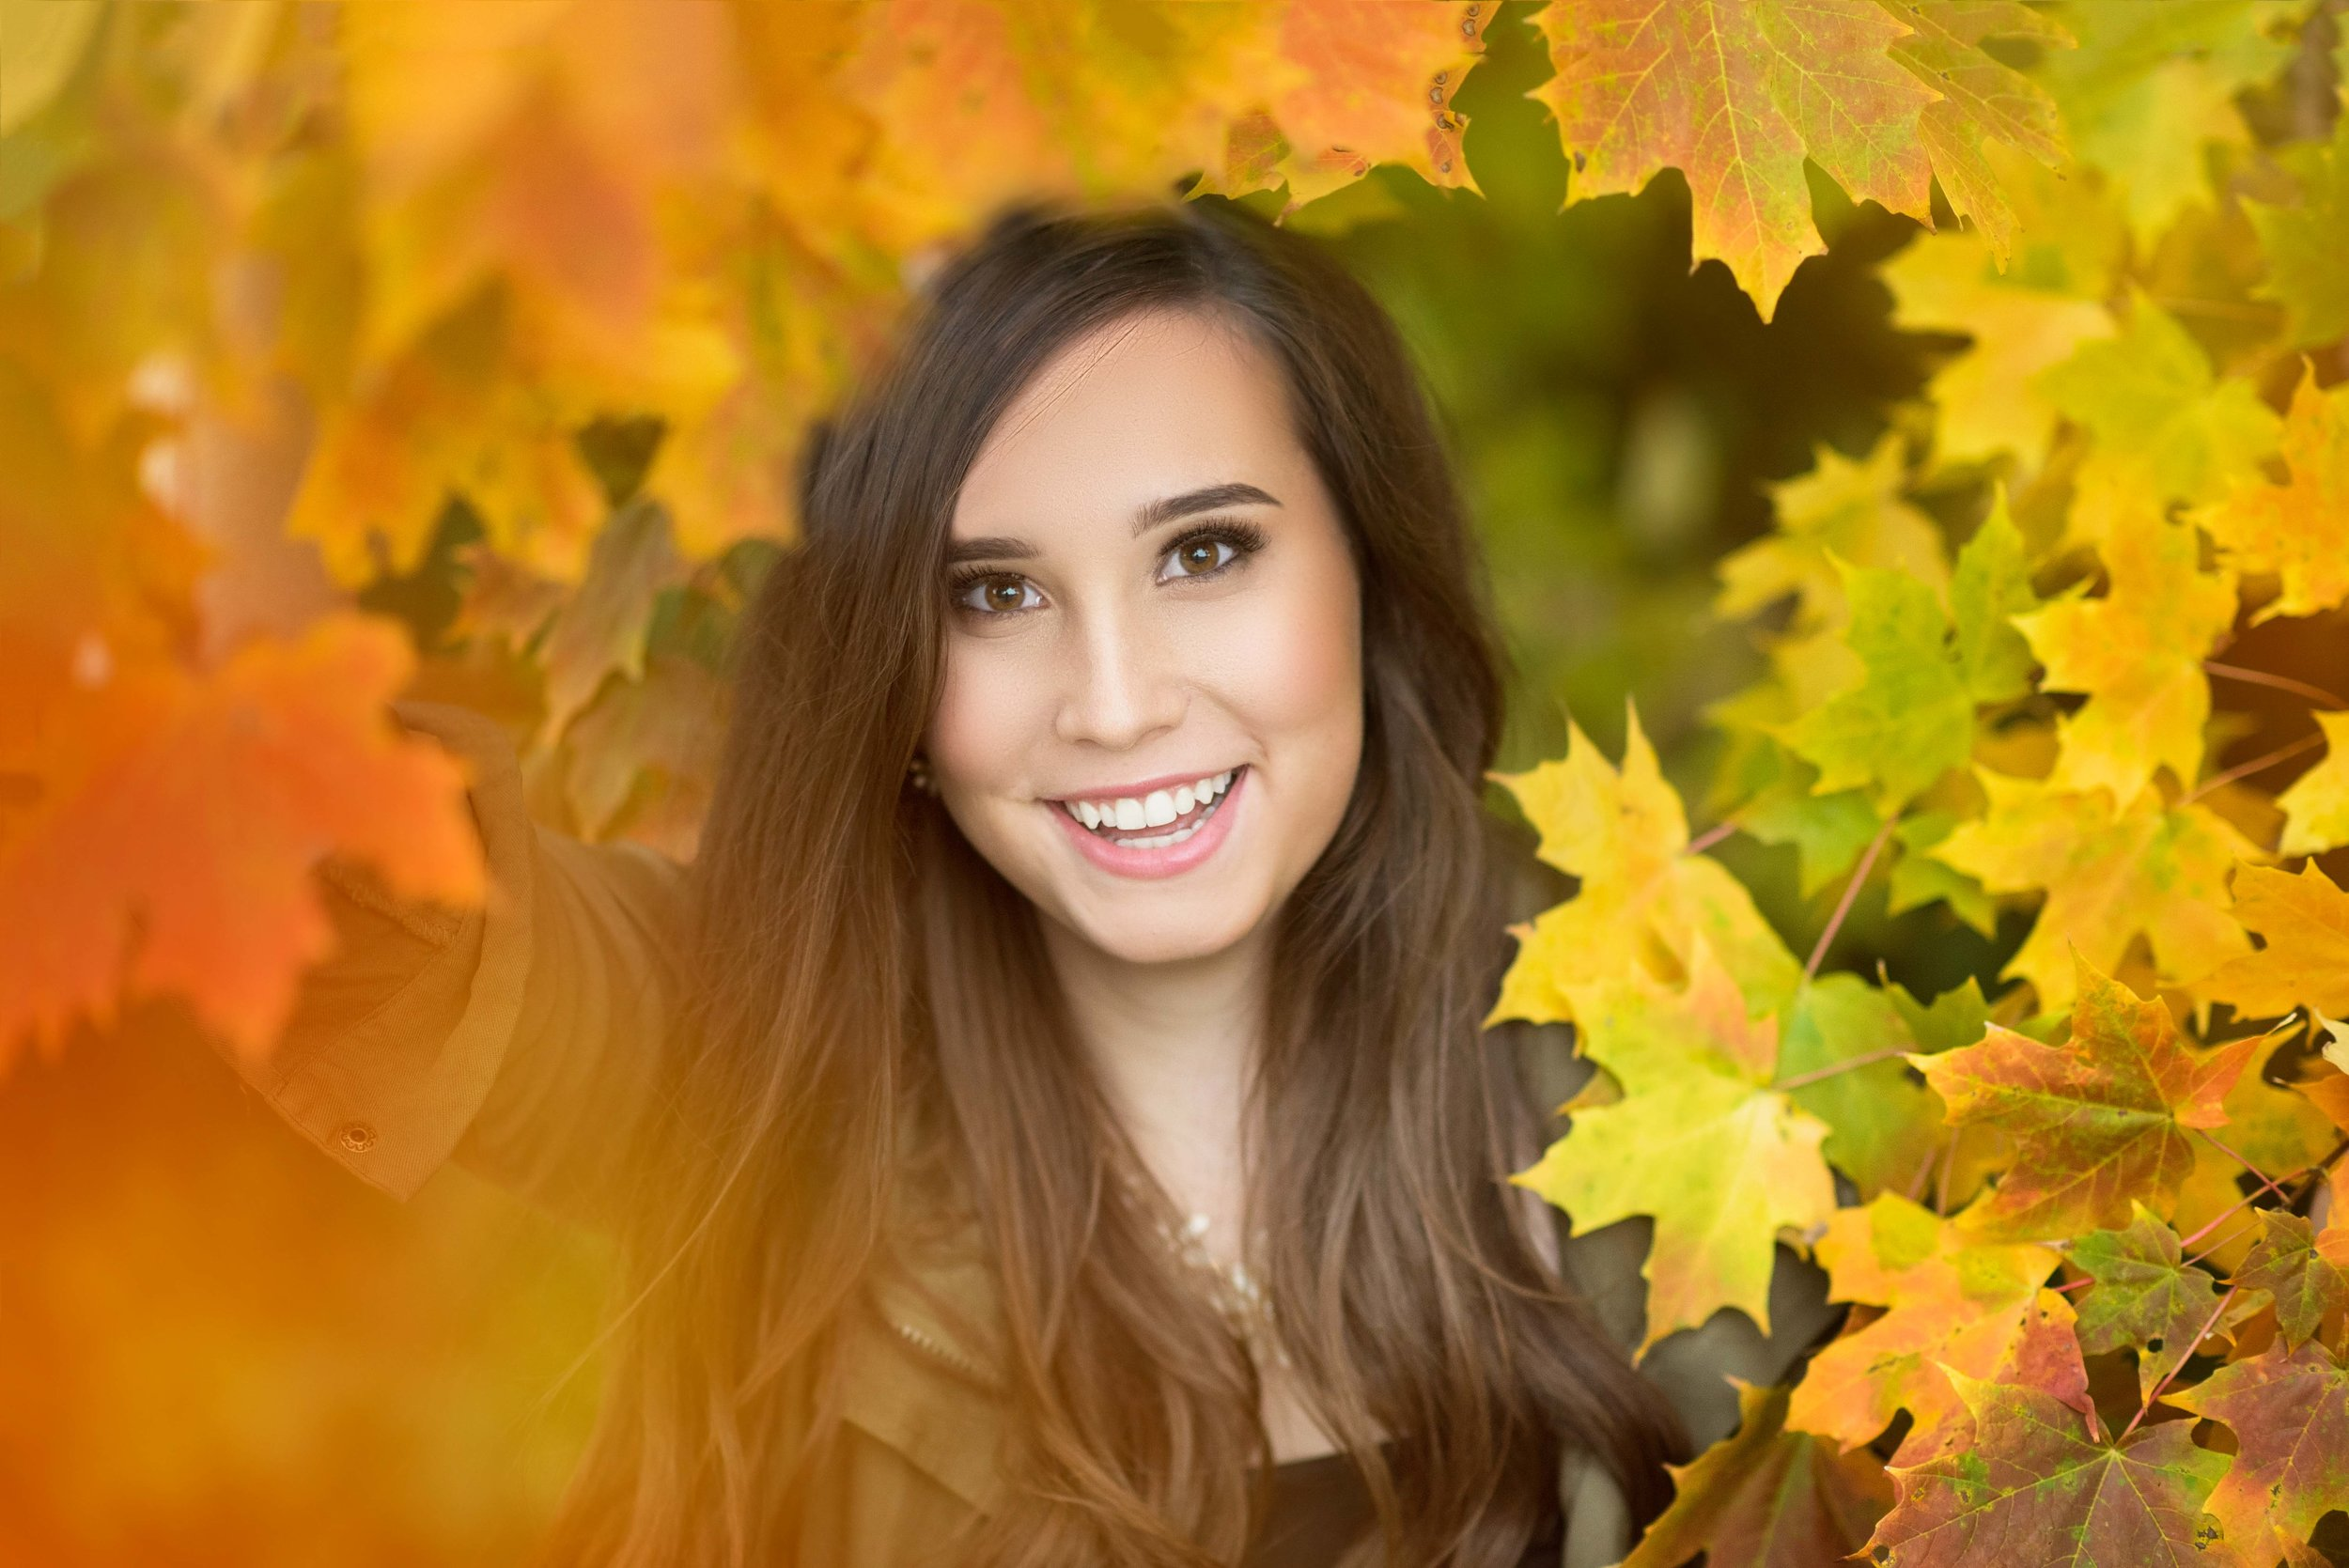 Fall for fringe - Information about our senior experience   Photoshoots   PackagesRated five stars by clients & located in Fishers, IN